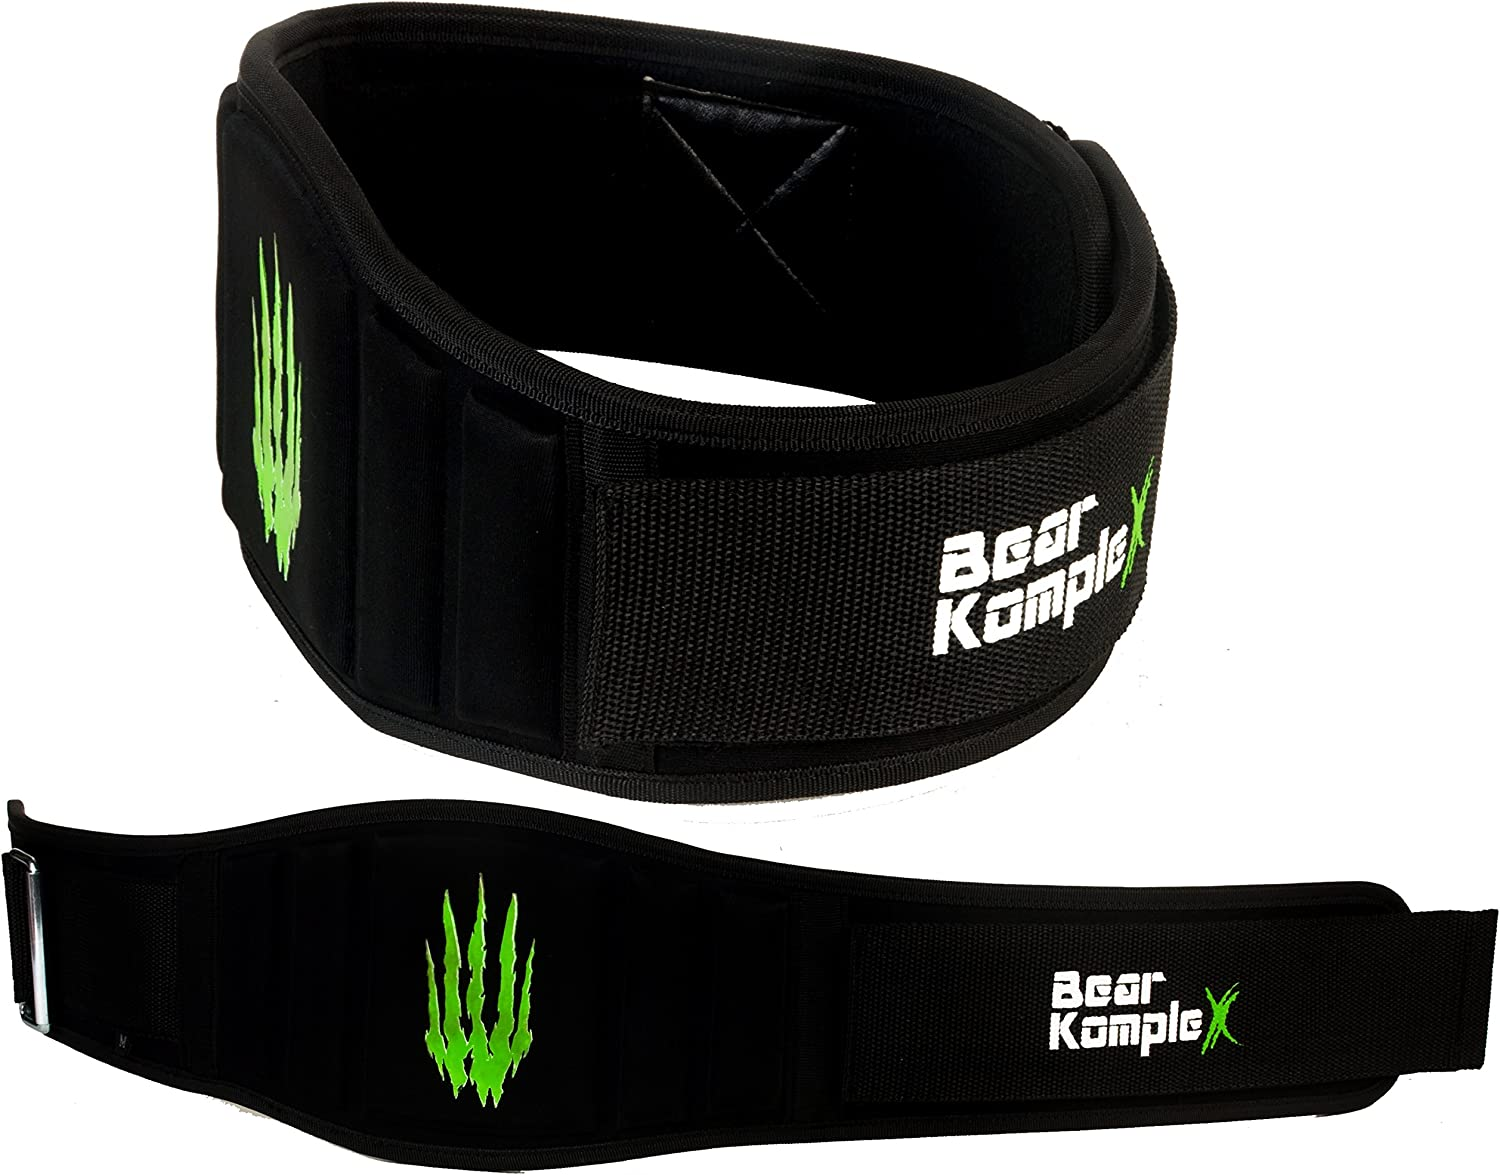 "Bear KompleX 6"" Strength Weightlifting Belt for Men & Women, Durable, Easily Adjustable, Low Profile with Super Firm Back for Support During Powerlifting, Cross Training, Squats, Weights, and More."